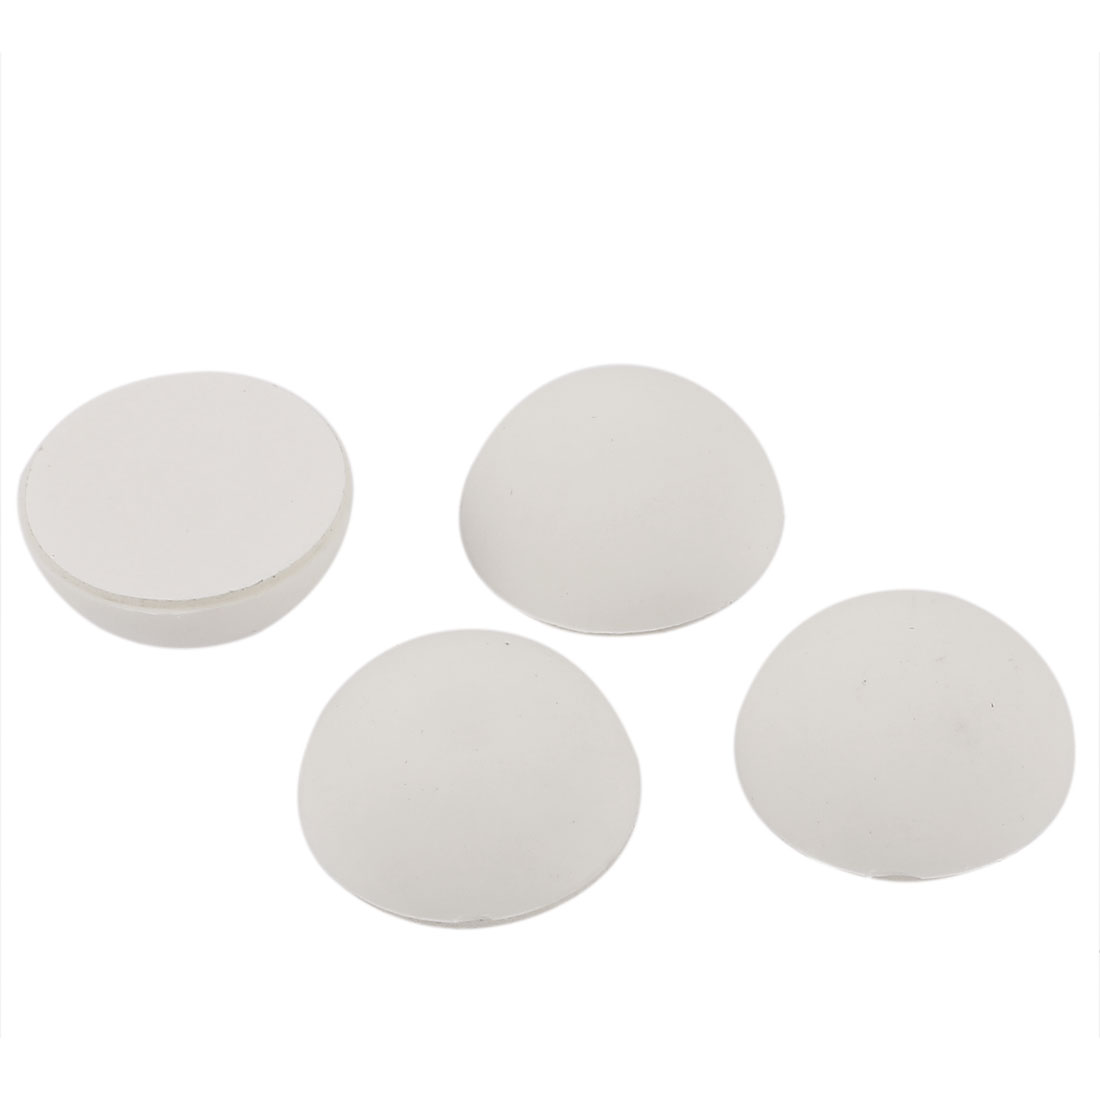 Rubber Wall Guard Doorstop Protectors Bumper Stopper Stop 4pcs White